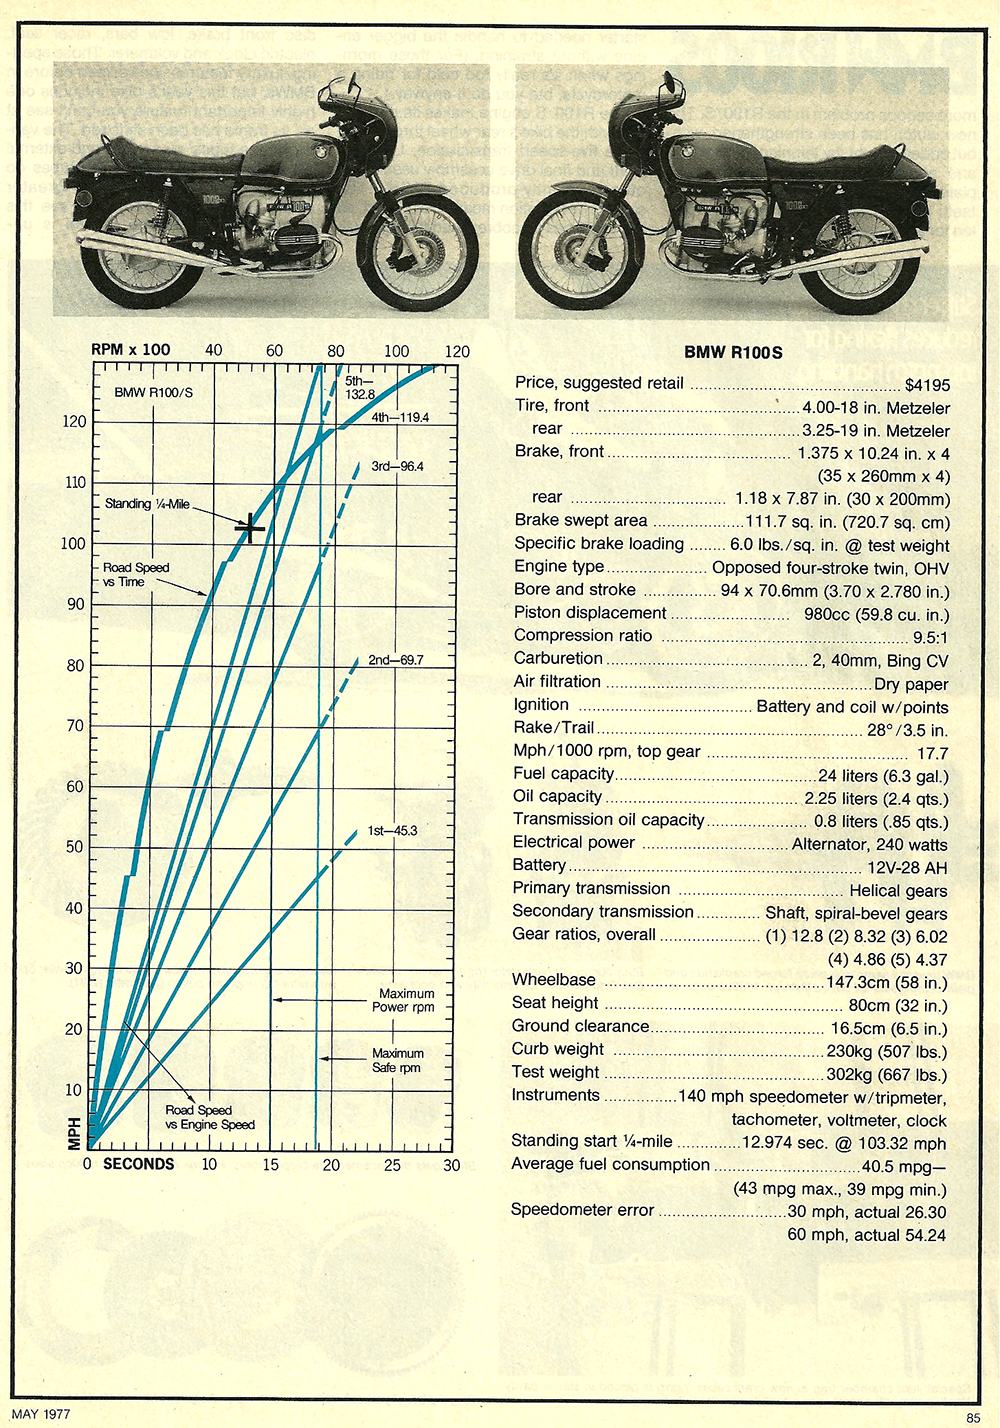 1977 BMW R100S road test 4.jpg